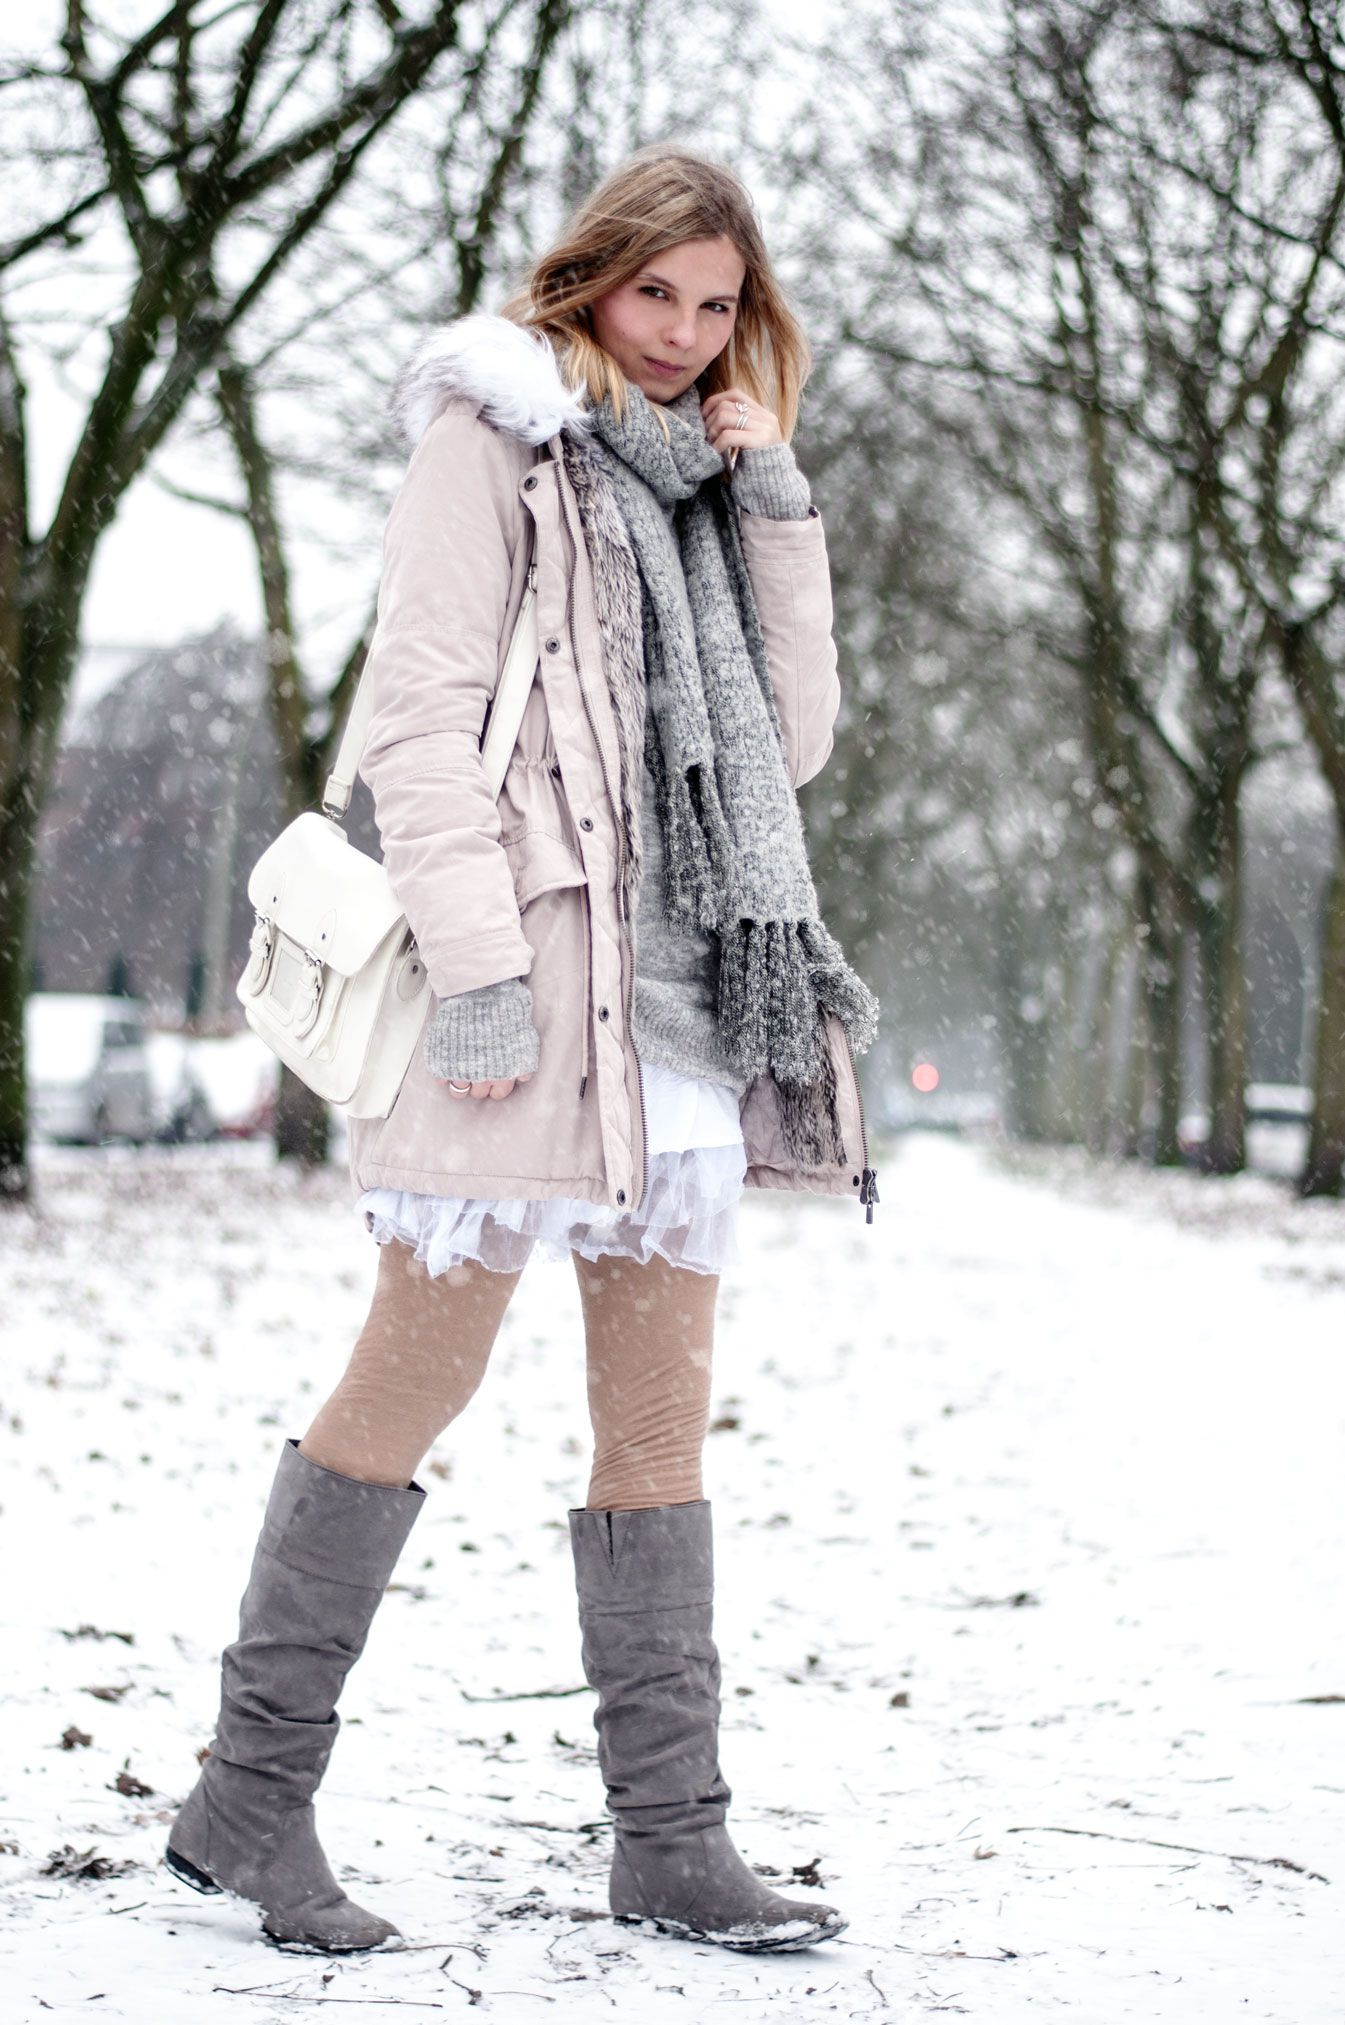 Pink parka, grey scarf, grey boots, white messenger bag, white tulle skirt, winter look, snow style, cozy, warm - Hamburg, Streetstyle, Outfit, Blogger